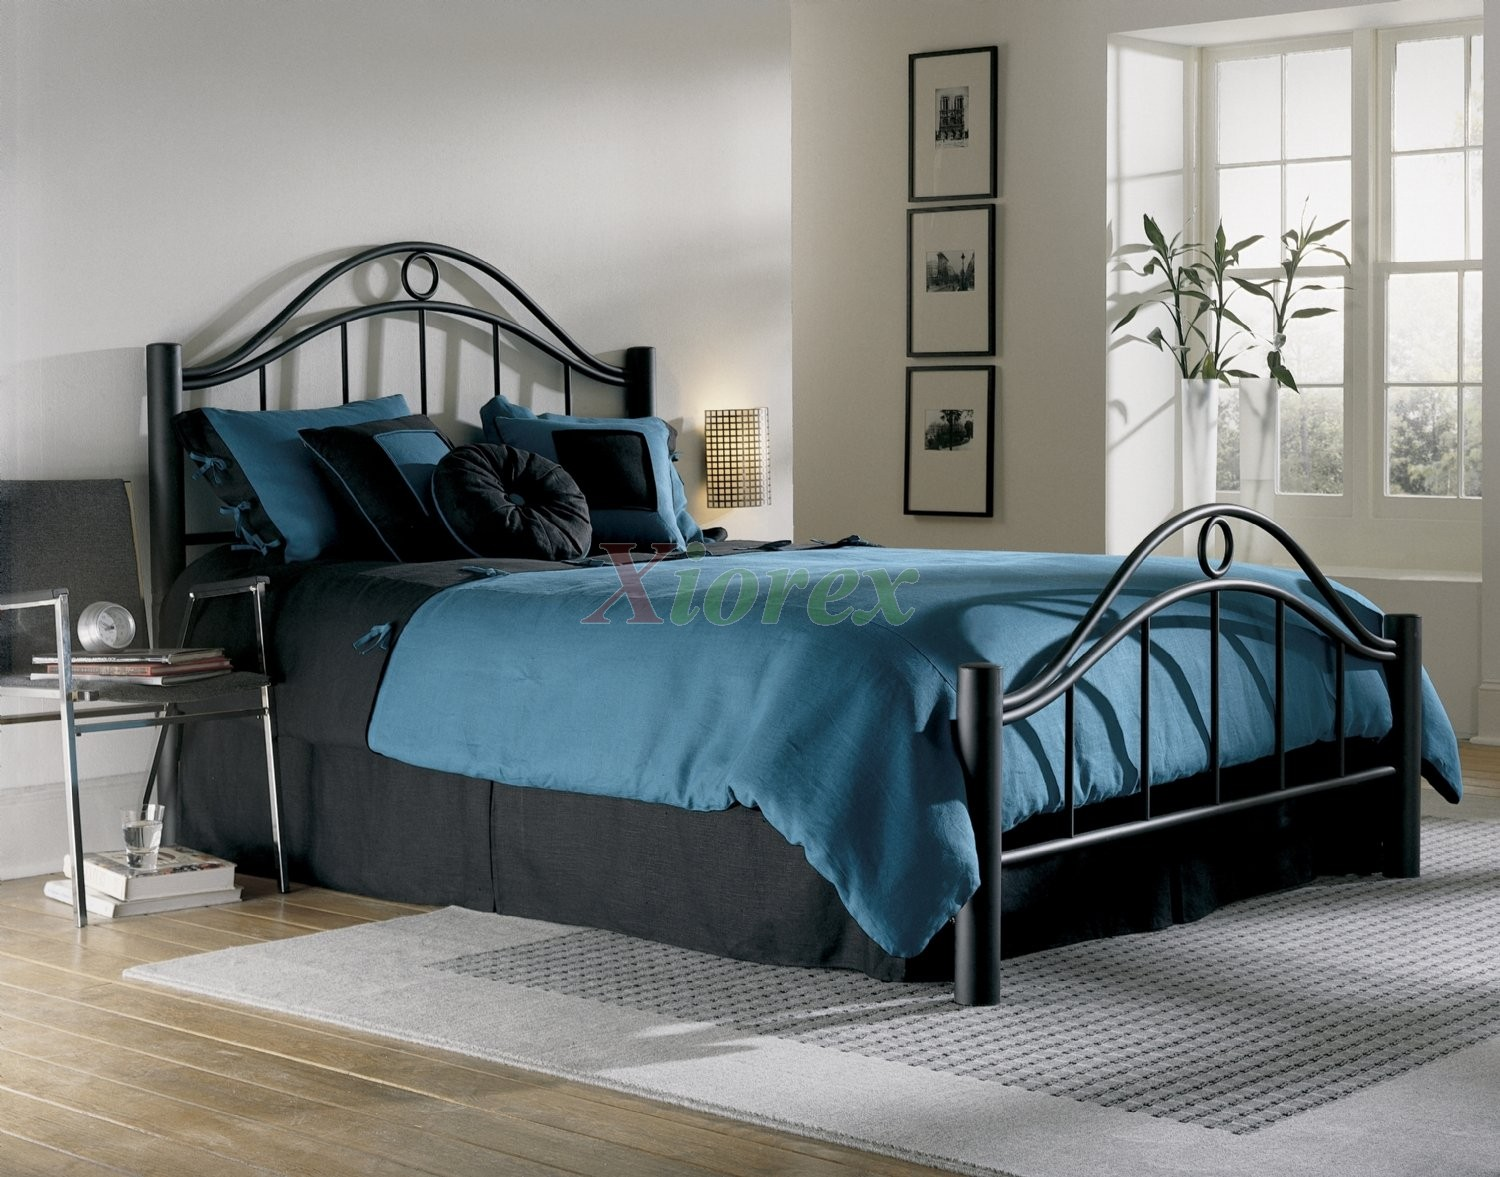 Linden Bed - Metal Bed w Frame in Matte Ebony Finish by FBG | Xiorex